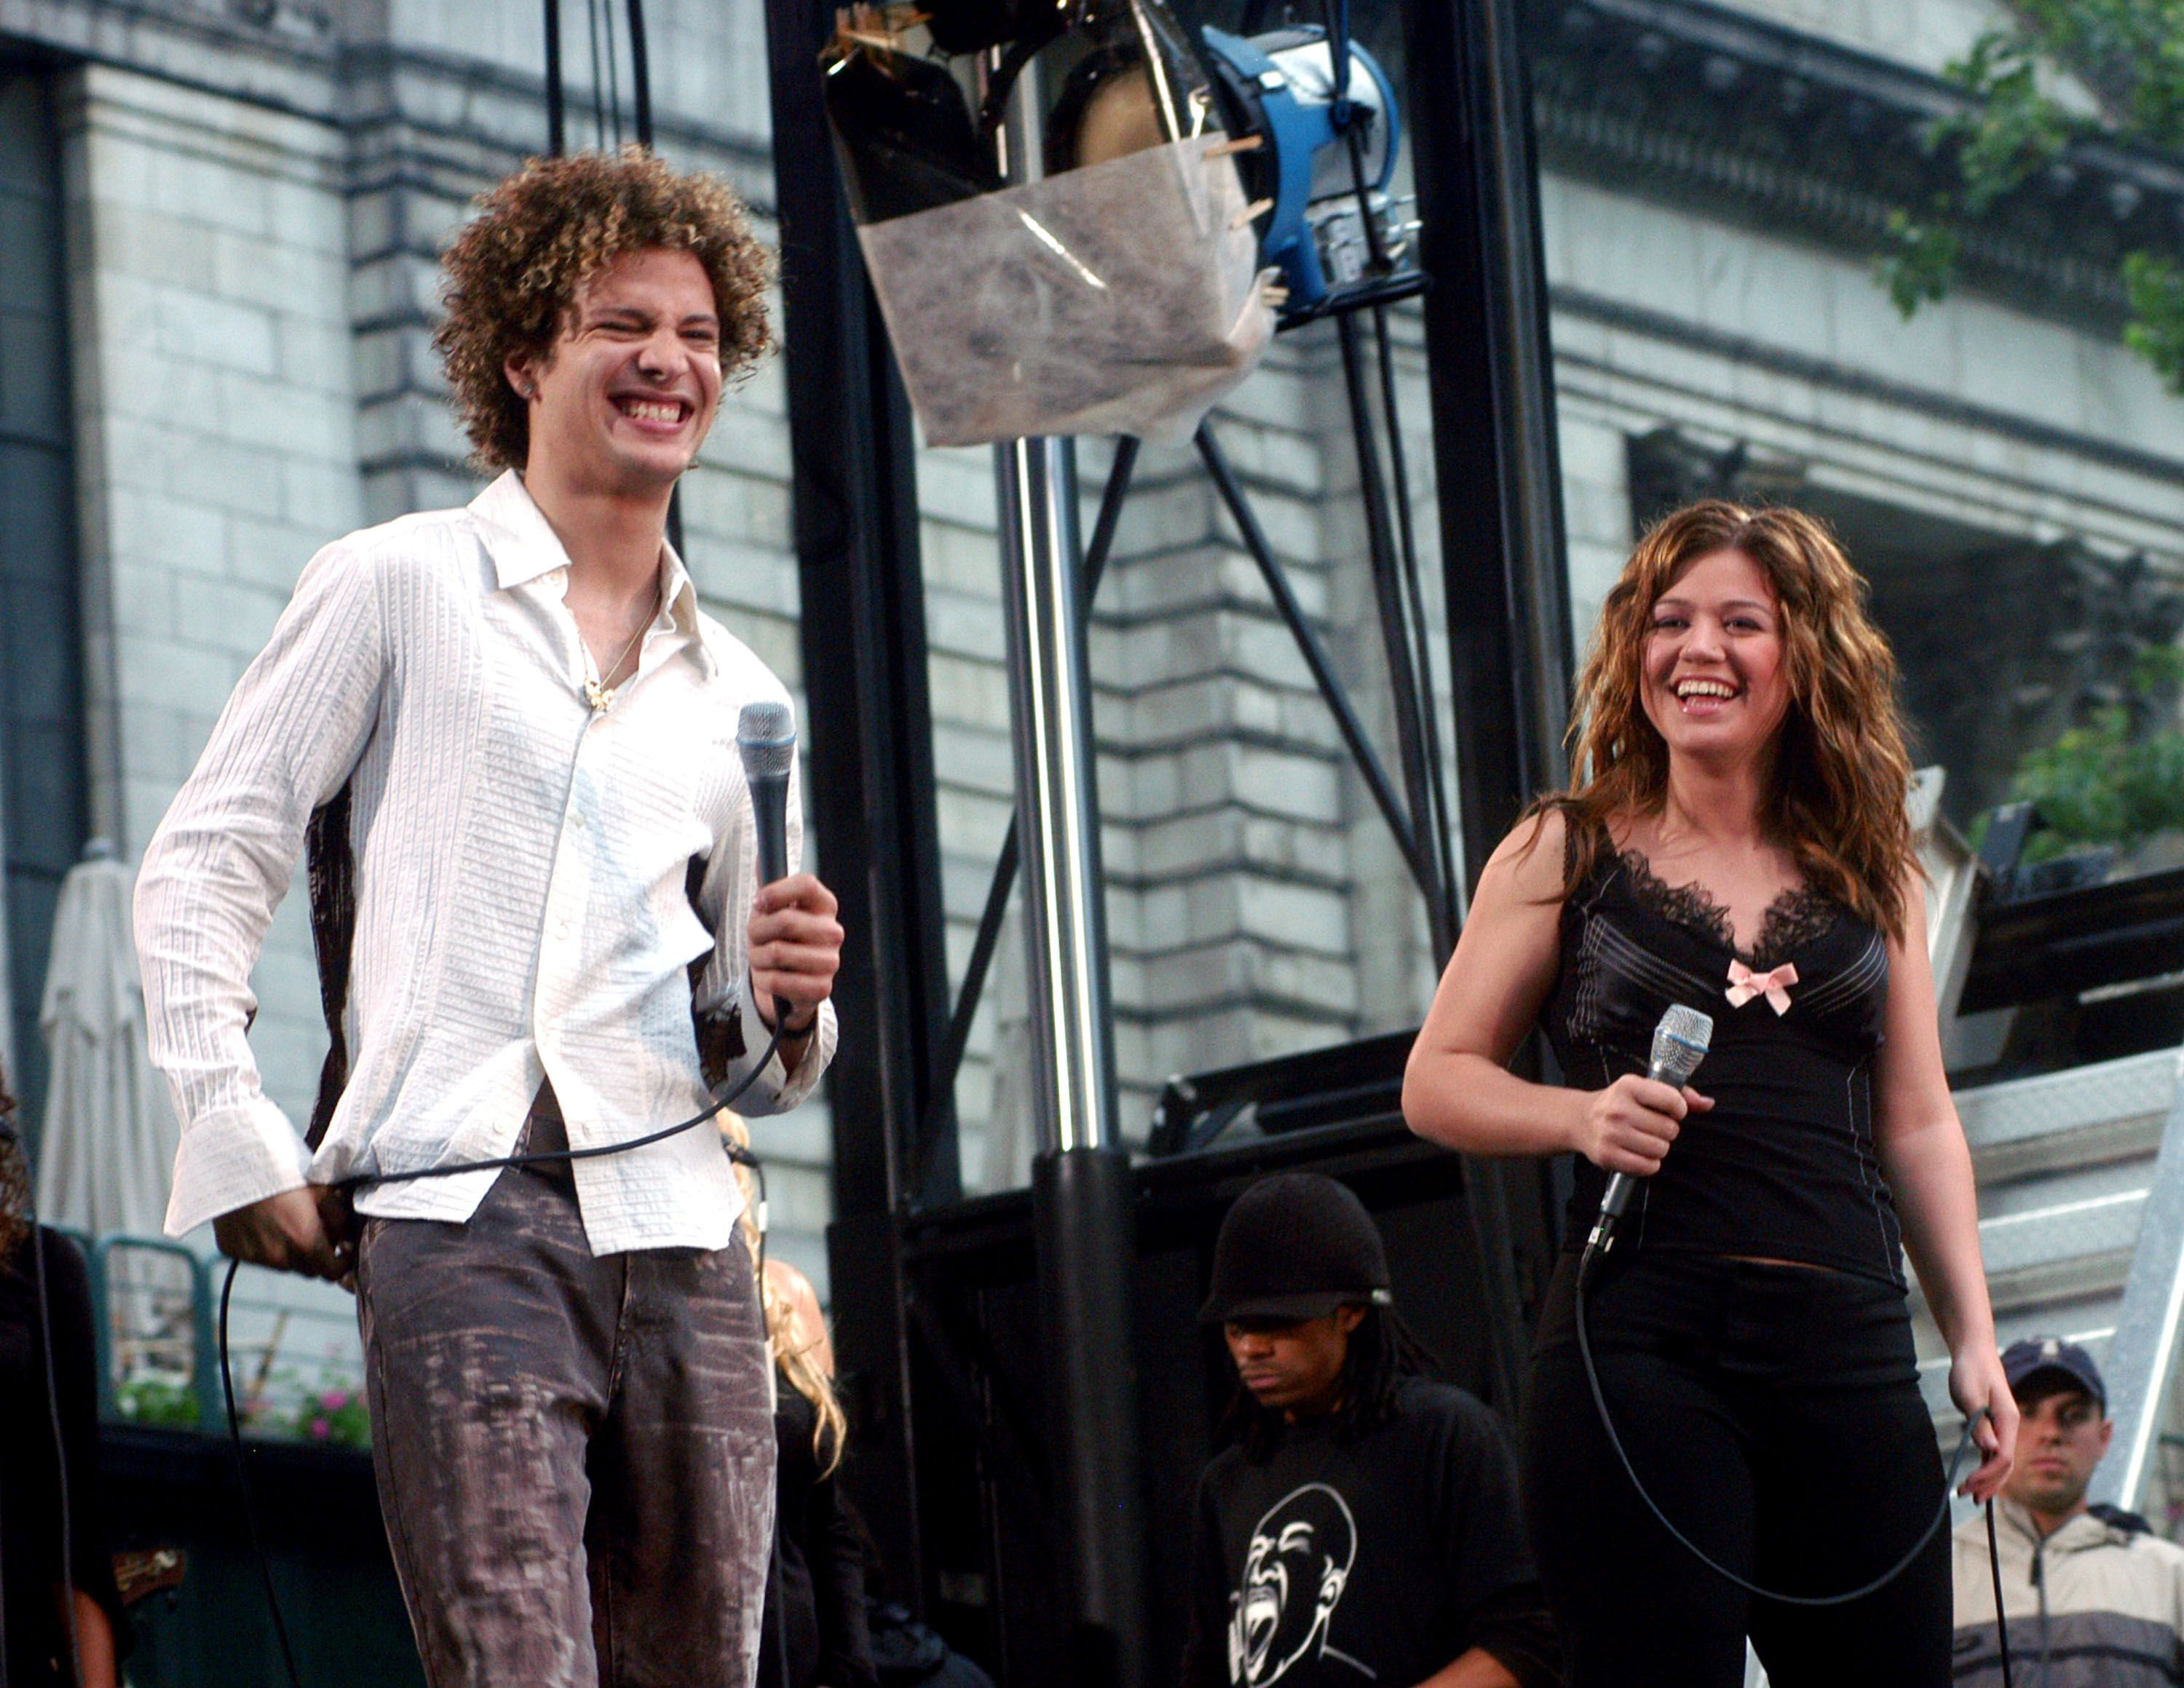 """Justin Guarini and Kelly Clarkson during """"Good Morning America's"""" 2003 Concert Series / Getty Images"""